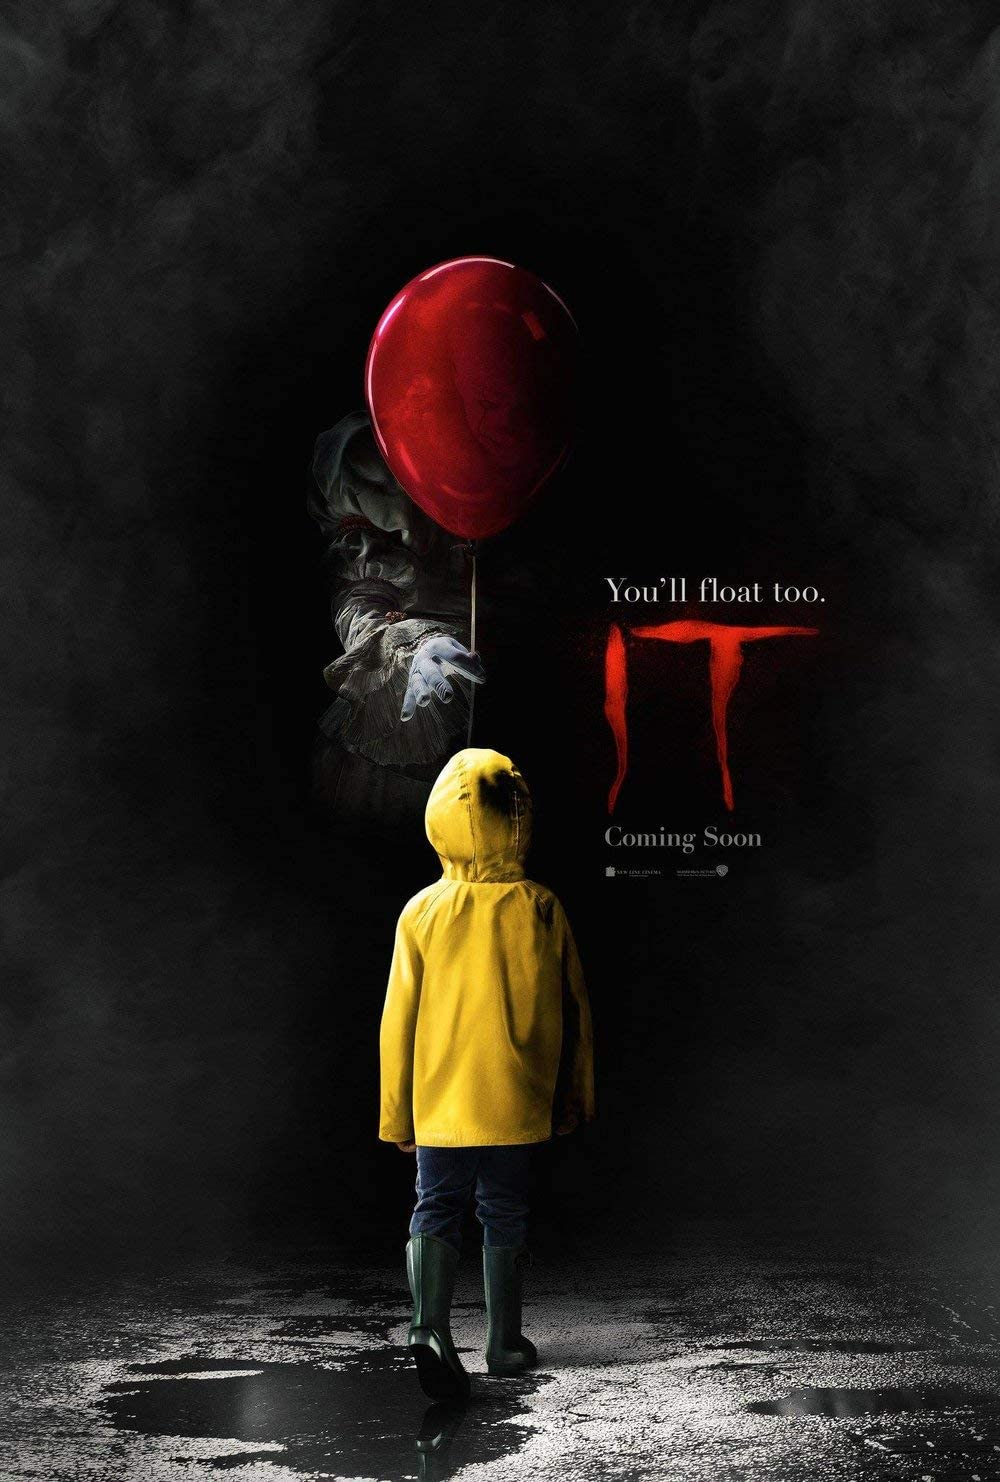 """Kopoo Promo 2017 Stephen King Pennywise IT Movie Poster, 12"""" x 18"""" (297 x 450 mm)"""